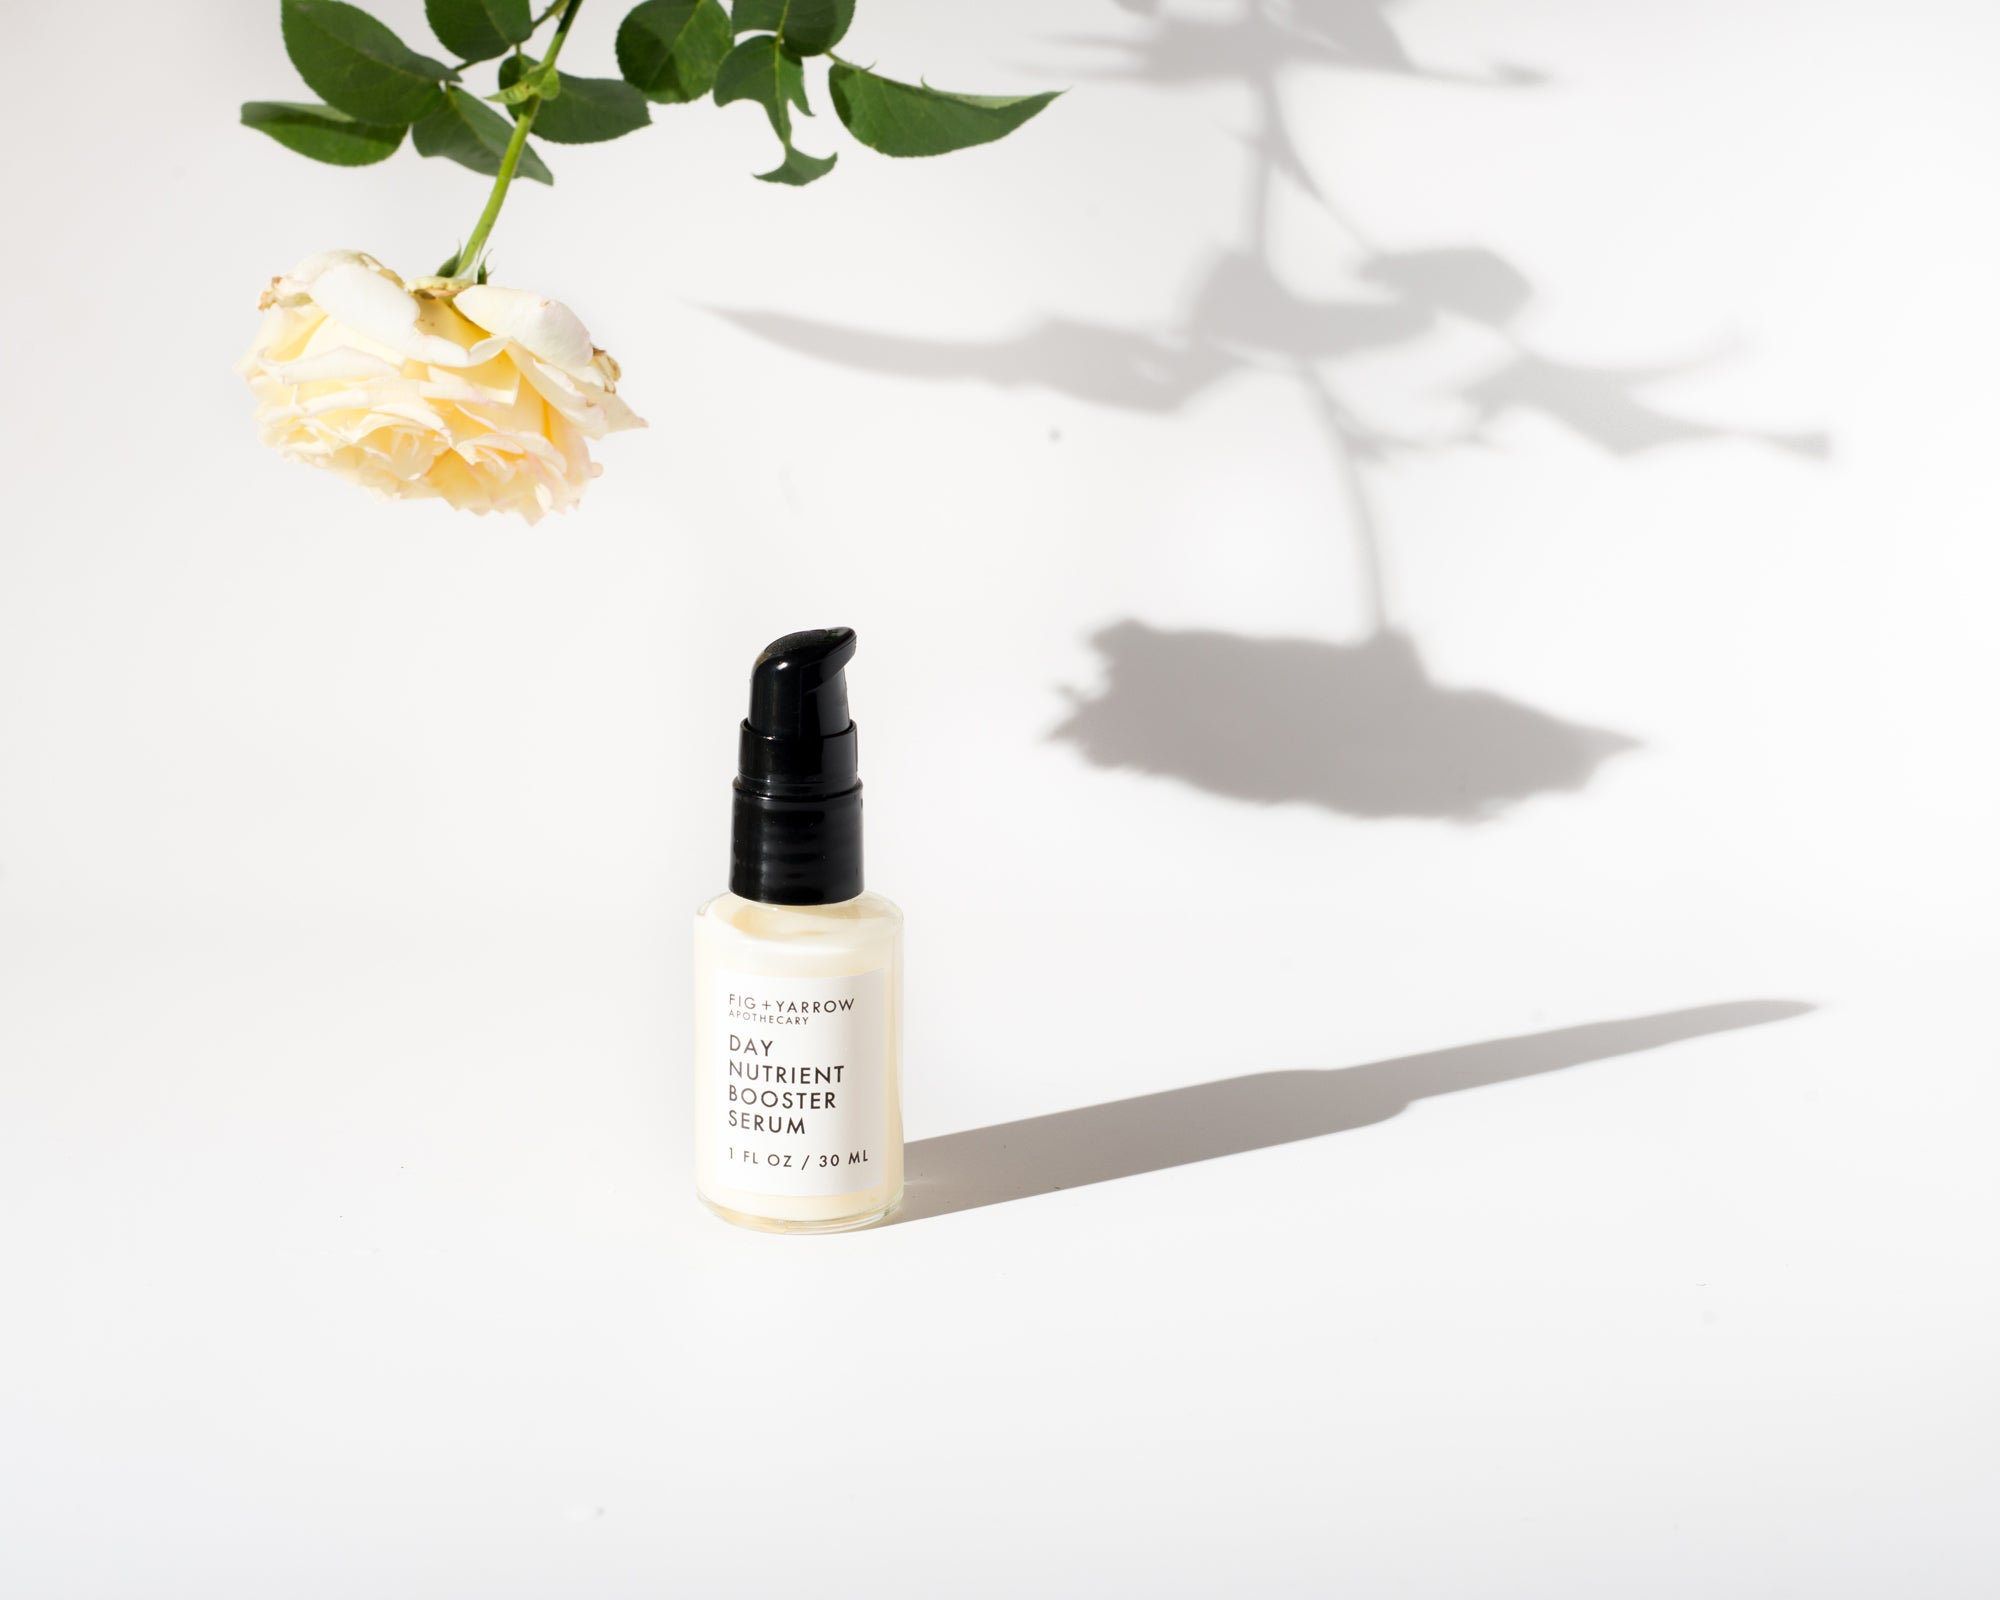 FIG+YARROW  Day Nutrient Booster Serum